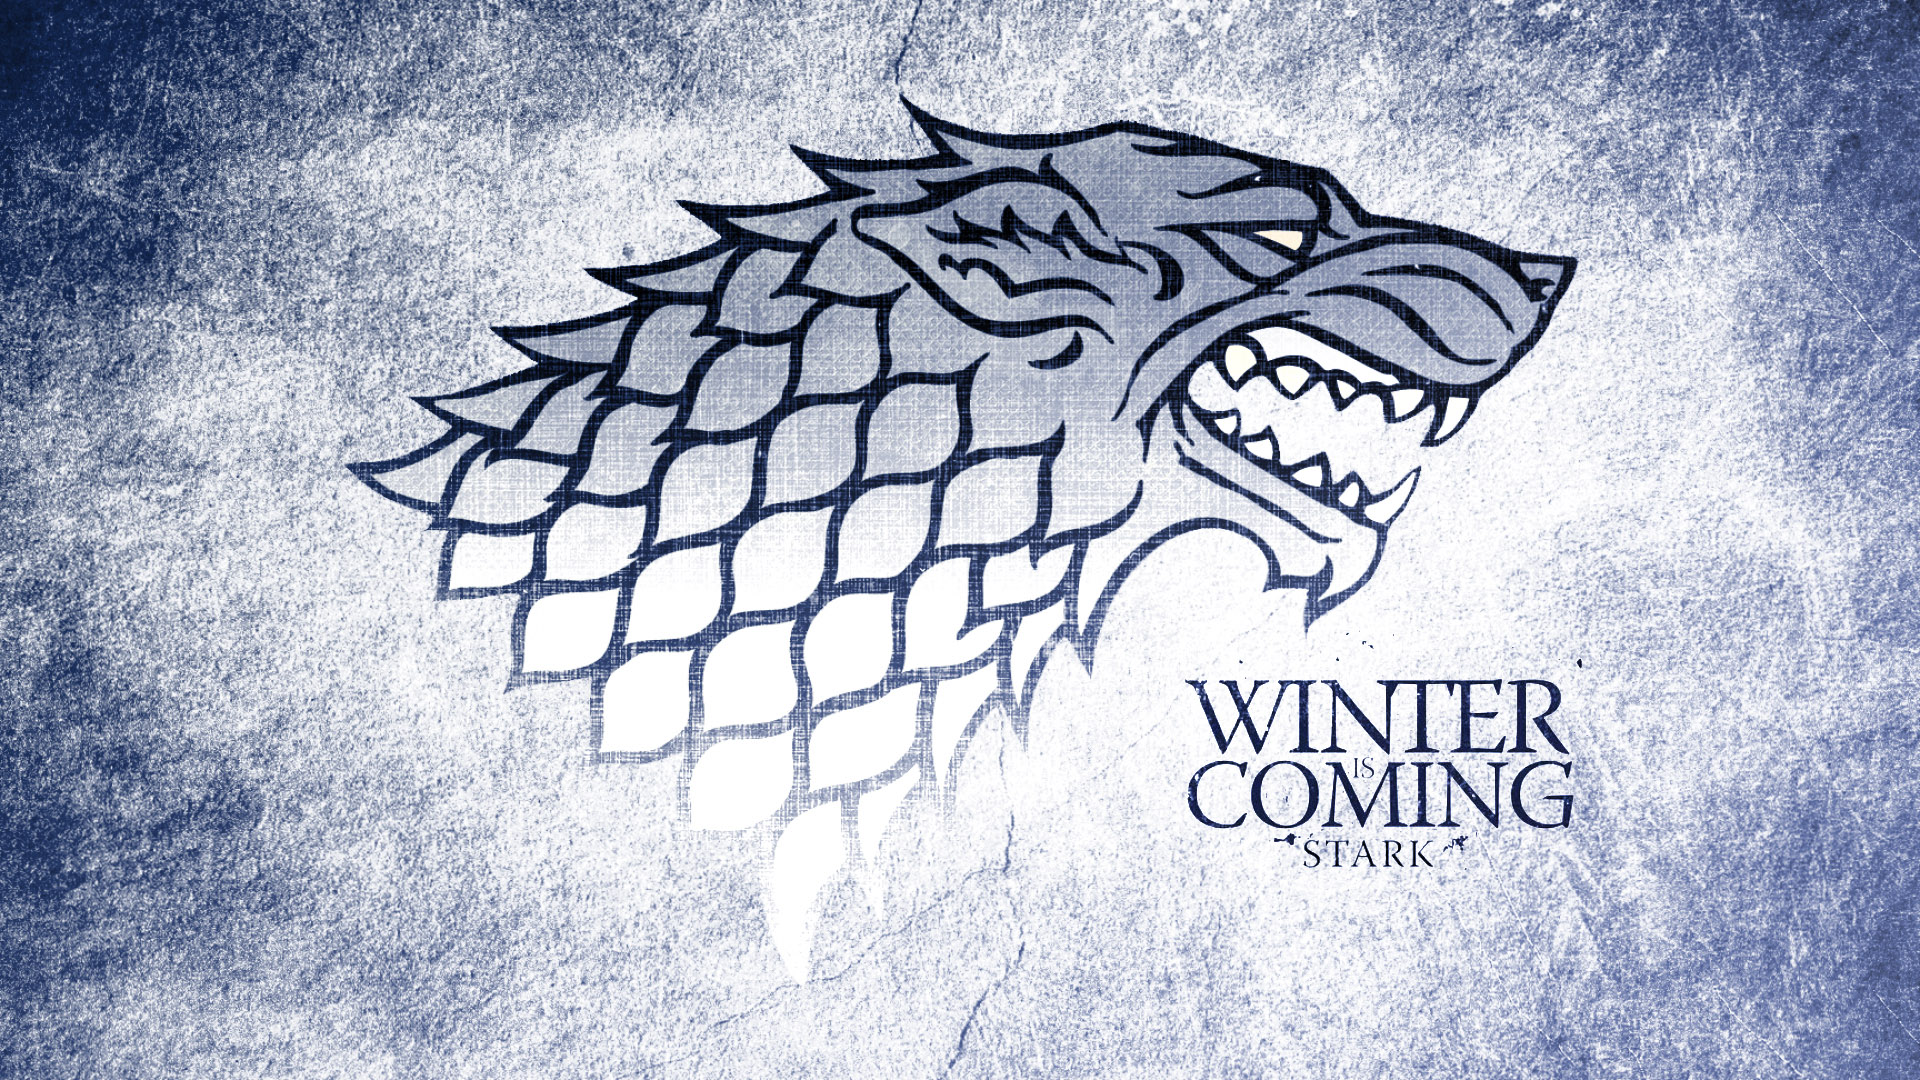 winter is coming stark wolf 1920x1080 699 hdjpg 1920x1080